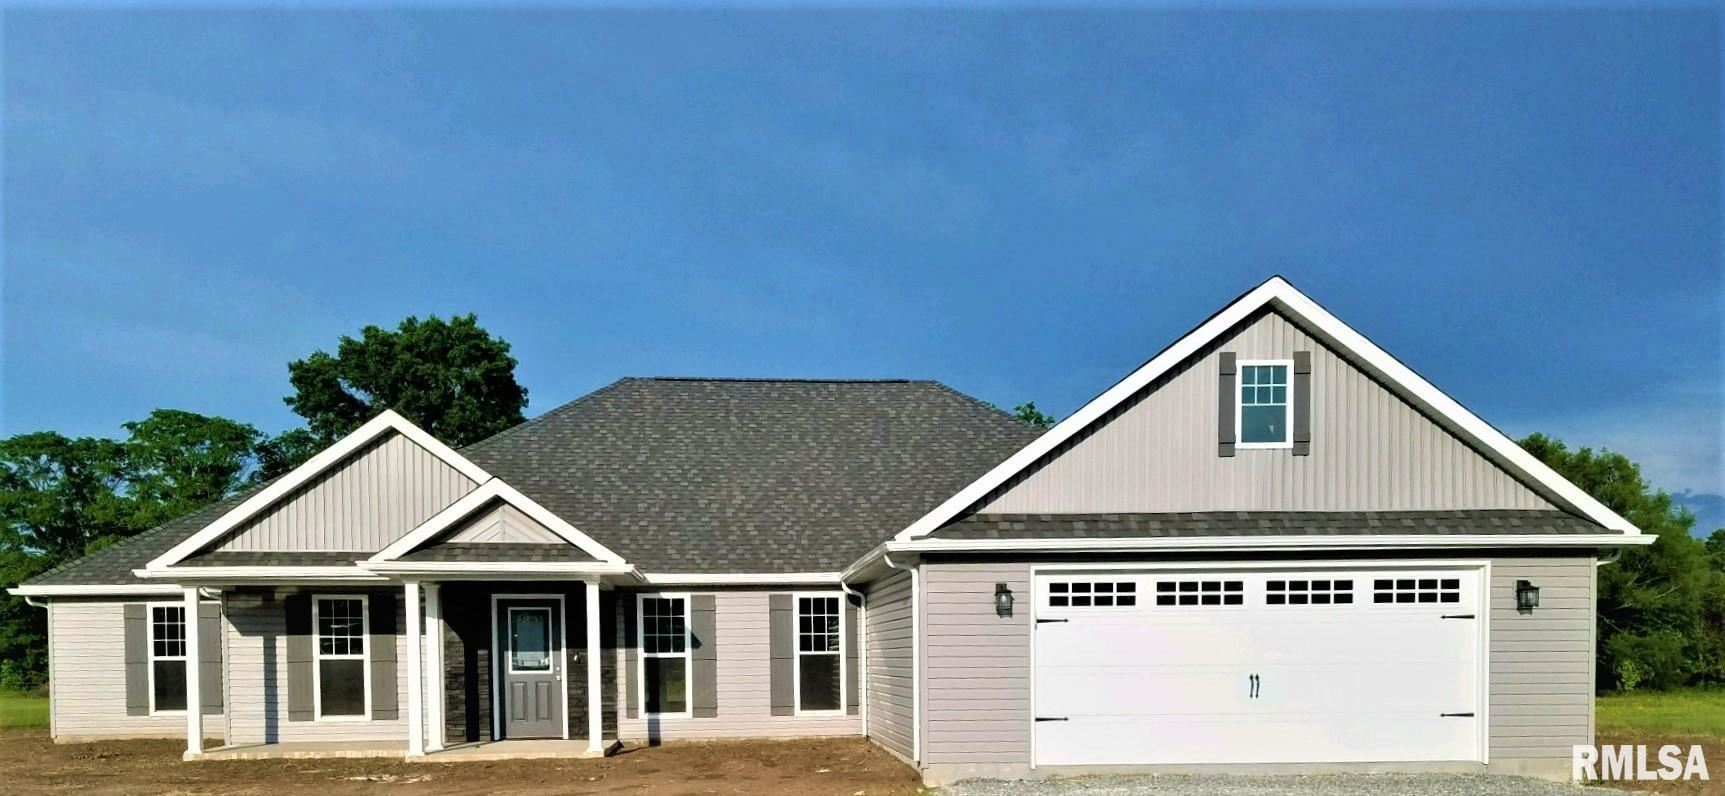 4196 Cypress Grove Place, Marion, IL 62959 - MLS#: QC4221396